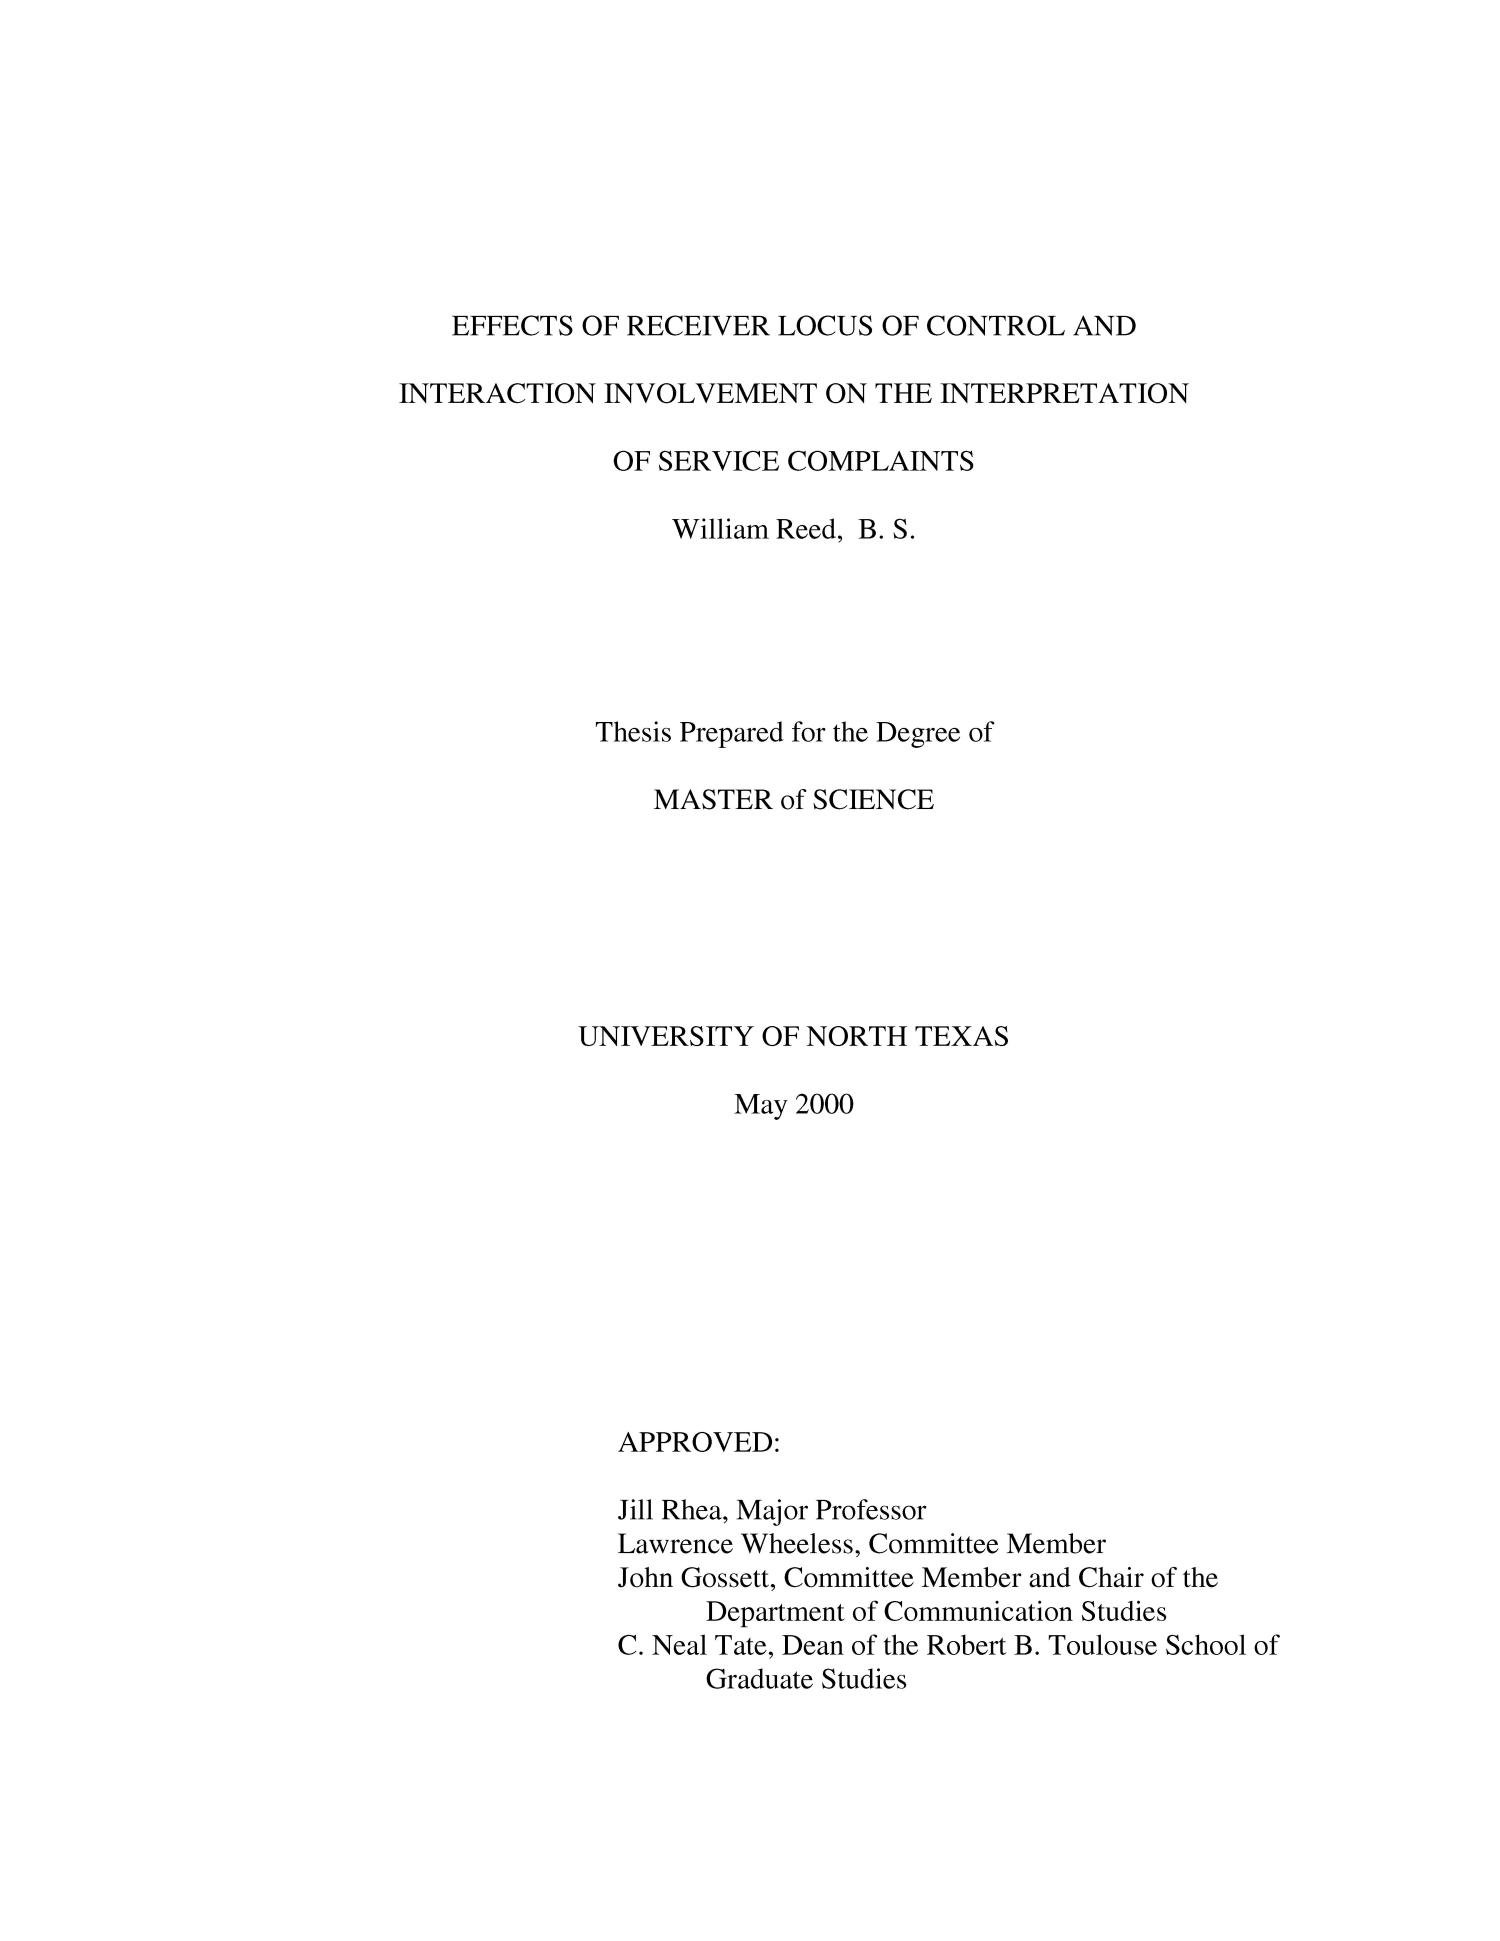 locus of control thesis The effect of locus of control on suspended and non-suspended black male high school students a thesis submitted to the faculty of clark atlanta.